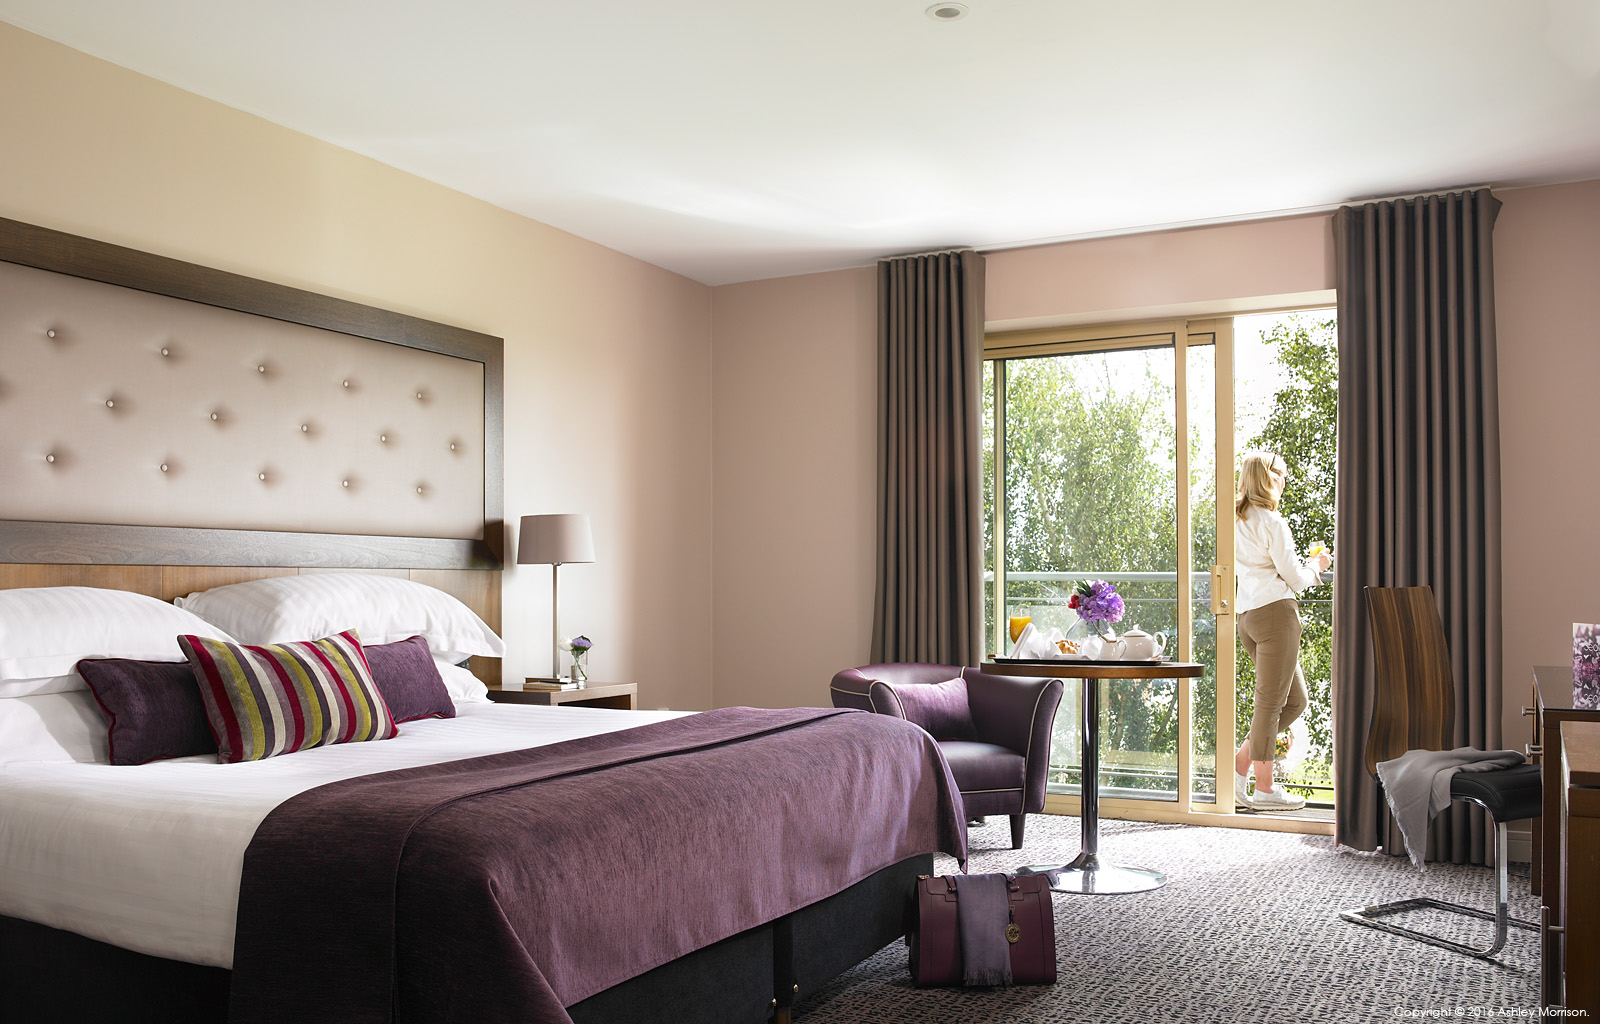 The Deluxe bedroom with a balcony at Dunboyne Castle Hotel & Spa in County Meath.